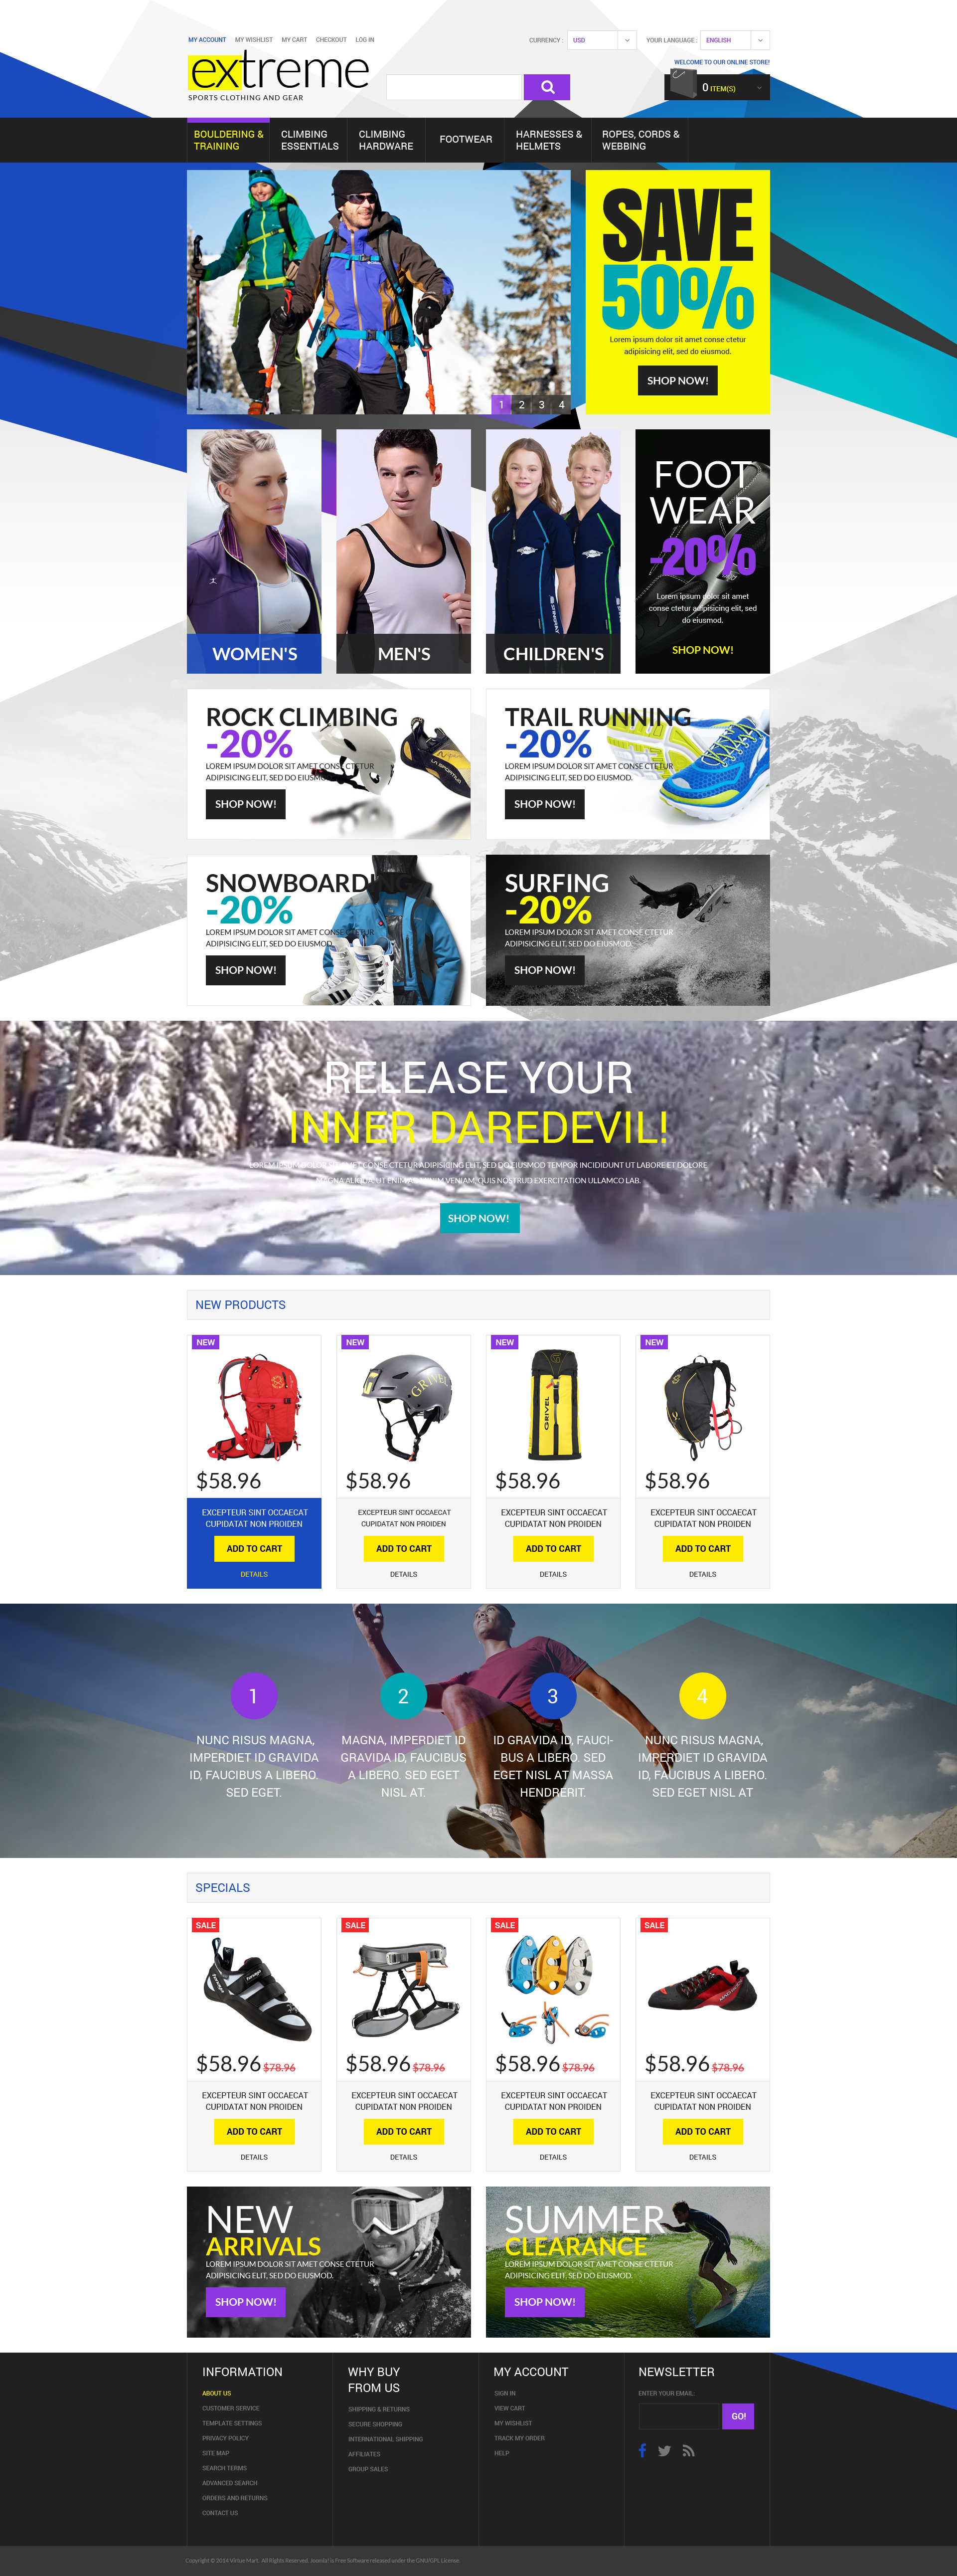 The Extreme Sport Online Shop Magento Design 53046, one of the best Magento themes of its kind (sport, most popular), also known as extreme sport online shop Magento template, fashion Magento template, pant Magento template, sweatshirt Magento template, belt Magento template, accessory Magento template, denim Magento template, outwear Magento template, pajama Magento template, robe Magento template, sweater Magento template, suit Magento template, short Magento template, underwear Magento template, kids Magento template, children Magento template, socks Magento template, wallet Magento template, t-shirt Magento template, jeans Magento template, jacket Magento template, pullover Magento template, swimsuit Magento template, thong Magento template, coverall Magento template, bag Magento template, shoes Magento template, dress Magento template, tie Magento template, brassier Magento template, prices Magento template, eye Magento template, wear Magento template, perfumes Magento template, footwear and related with extreme sport online shop, fashion, pant, sweatshirt, belt, accessory, denim, outwear, pajama, robe, sweater, suit, short, underwear, kids, children, socks, wallet, t-shirt, jeans, jacket, pullover, swimsuit, thong, coverall, bag, shoes, dress, tie, brassier, prices, eye, wear, perfumes, footwear, etc.